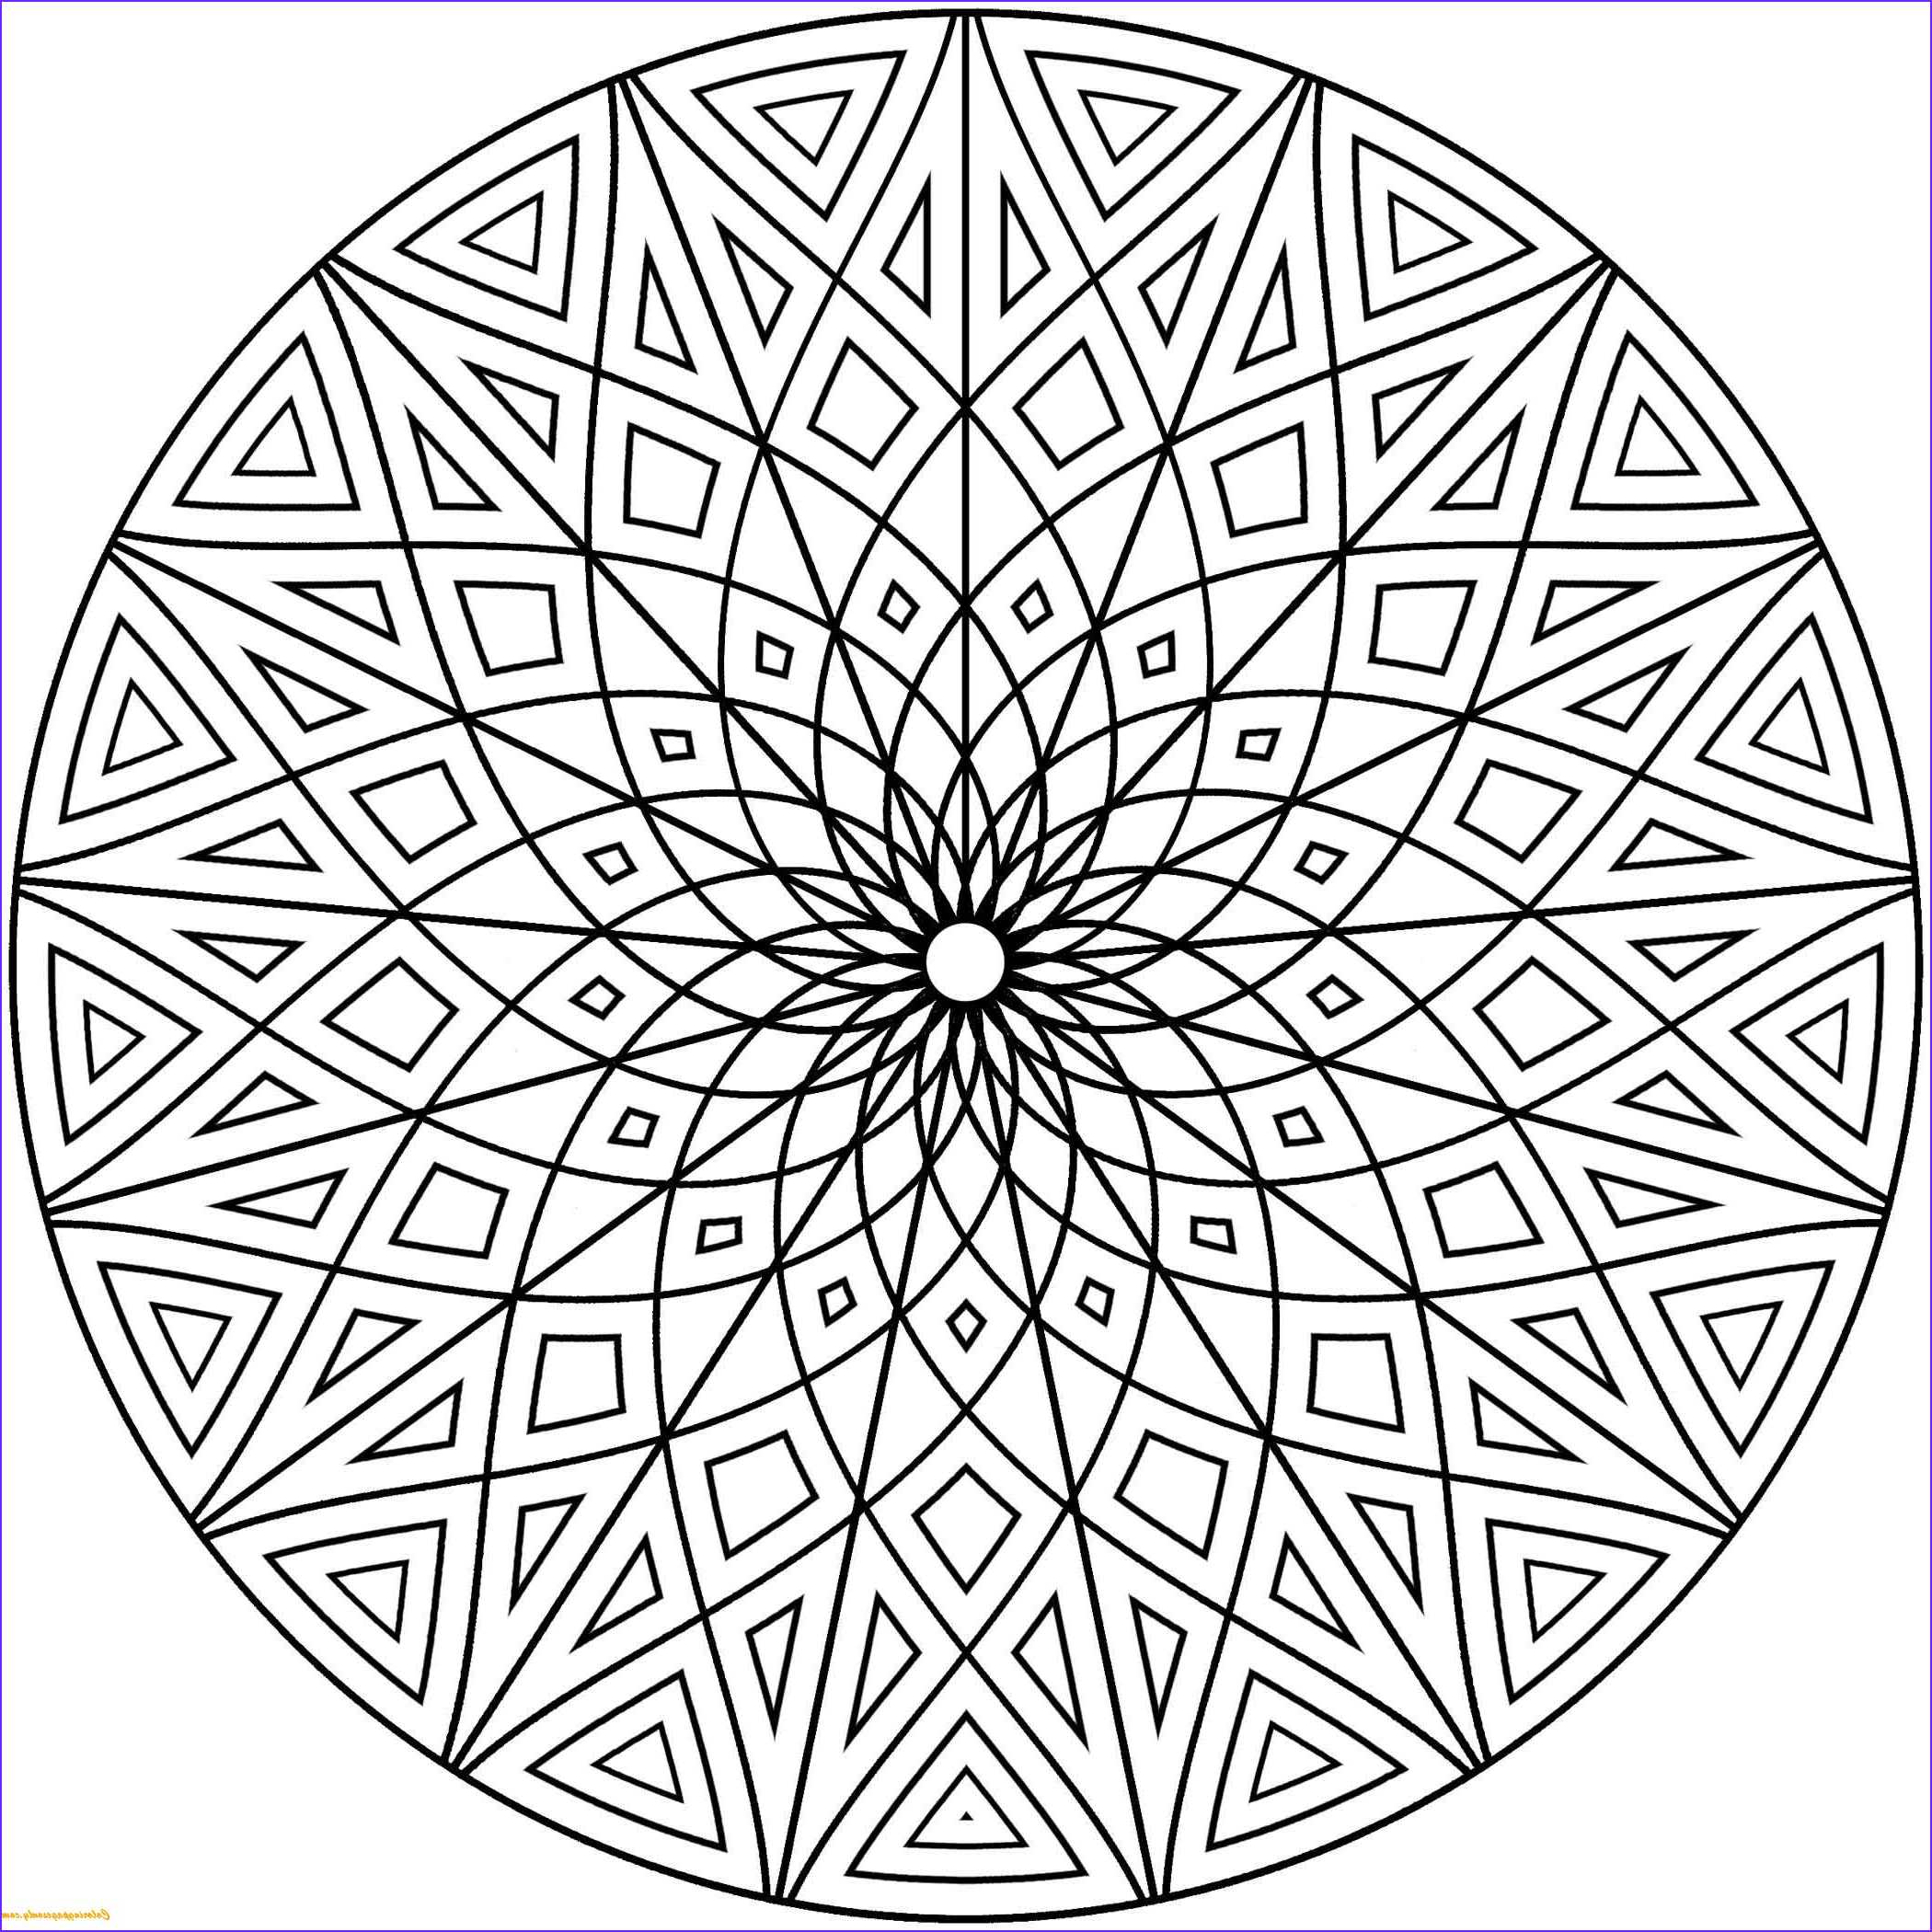 Coloring Pages Designs Luxury Images Hard Geometric Designs Coloring Page Free Coloring Pages